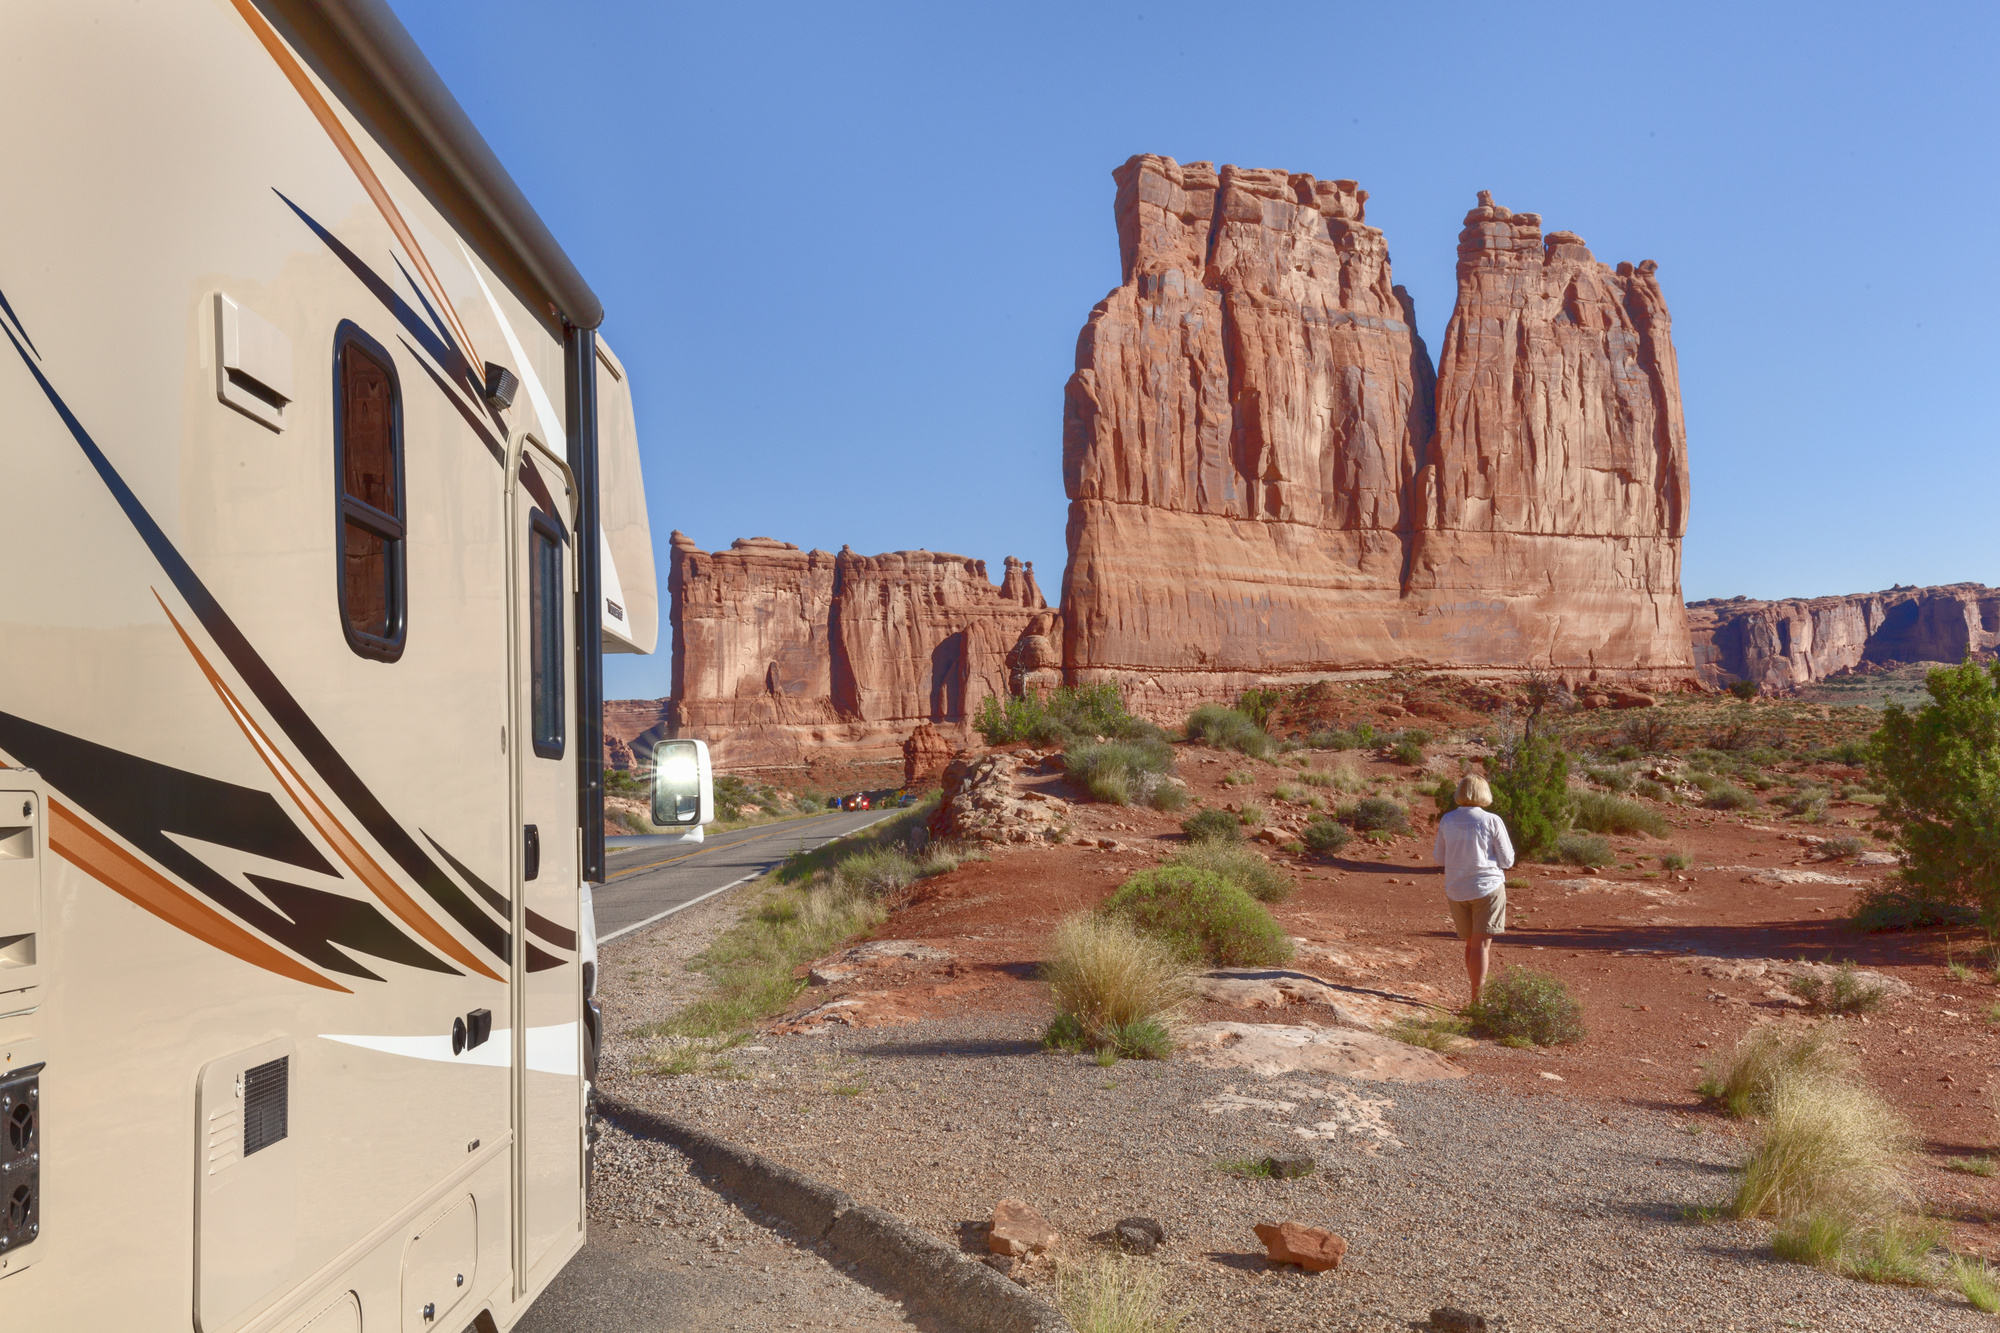 Travel in Style: Your Guide to the Best RV Parks in the U.S.